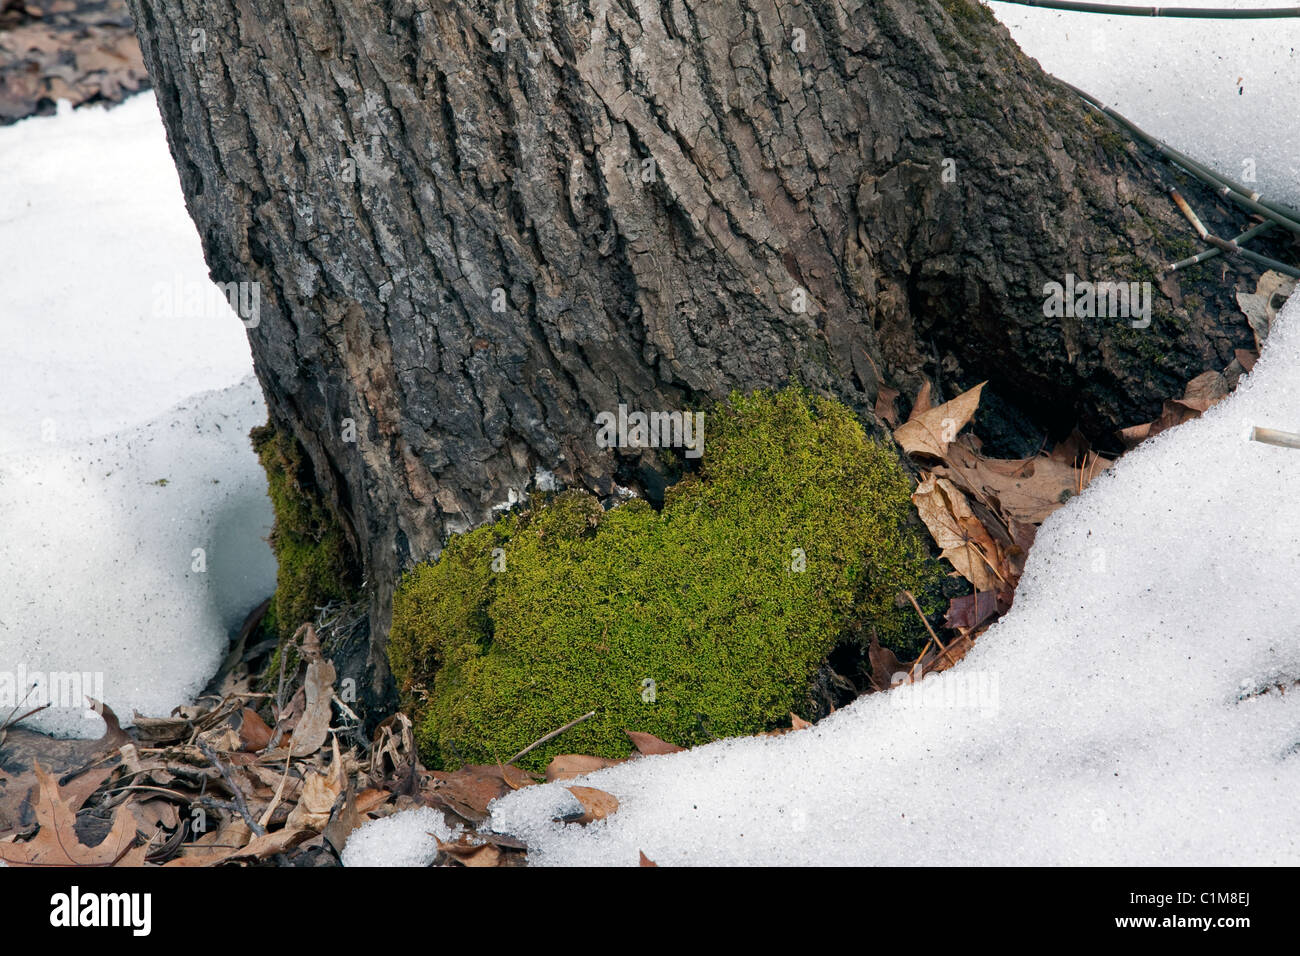 Carpet Moss growing on base of tree trunk Eastern Deciduous Forest Eastern United States - Stock Image